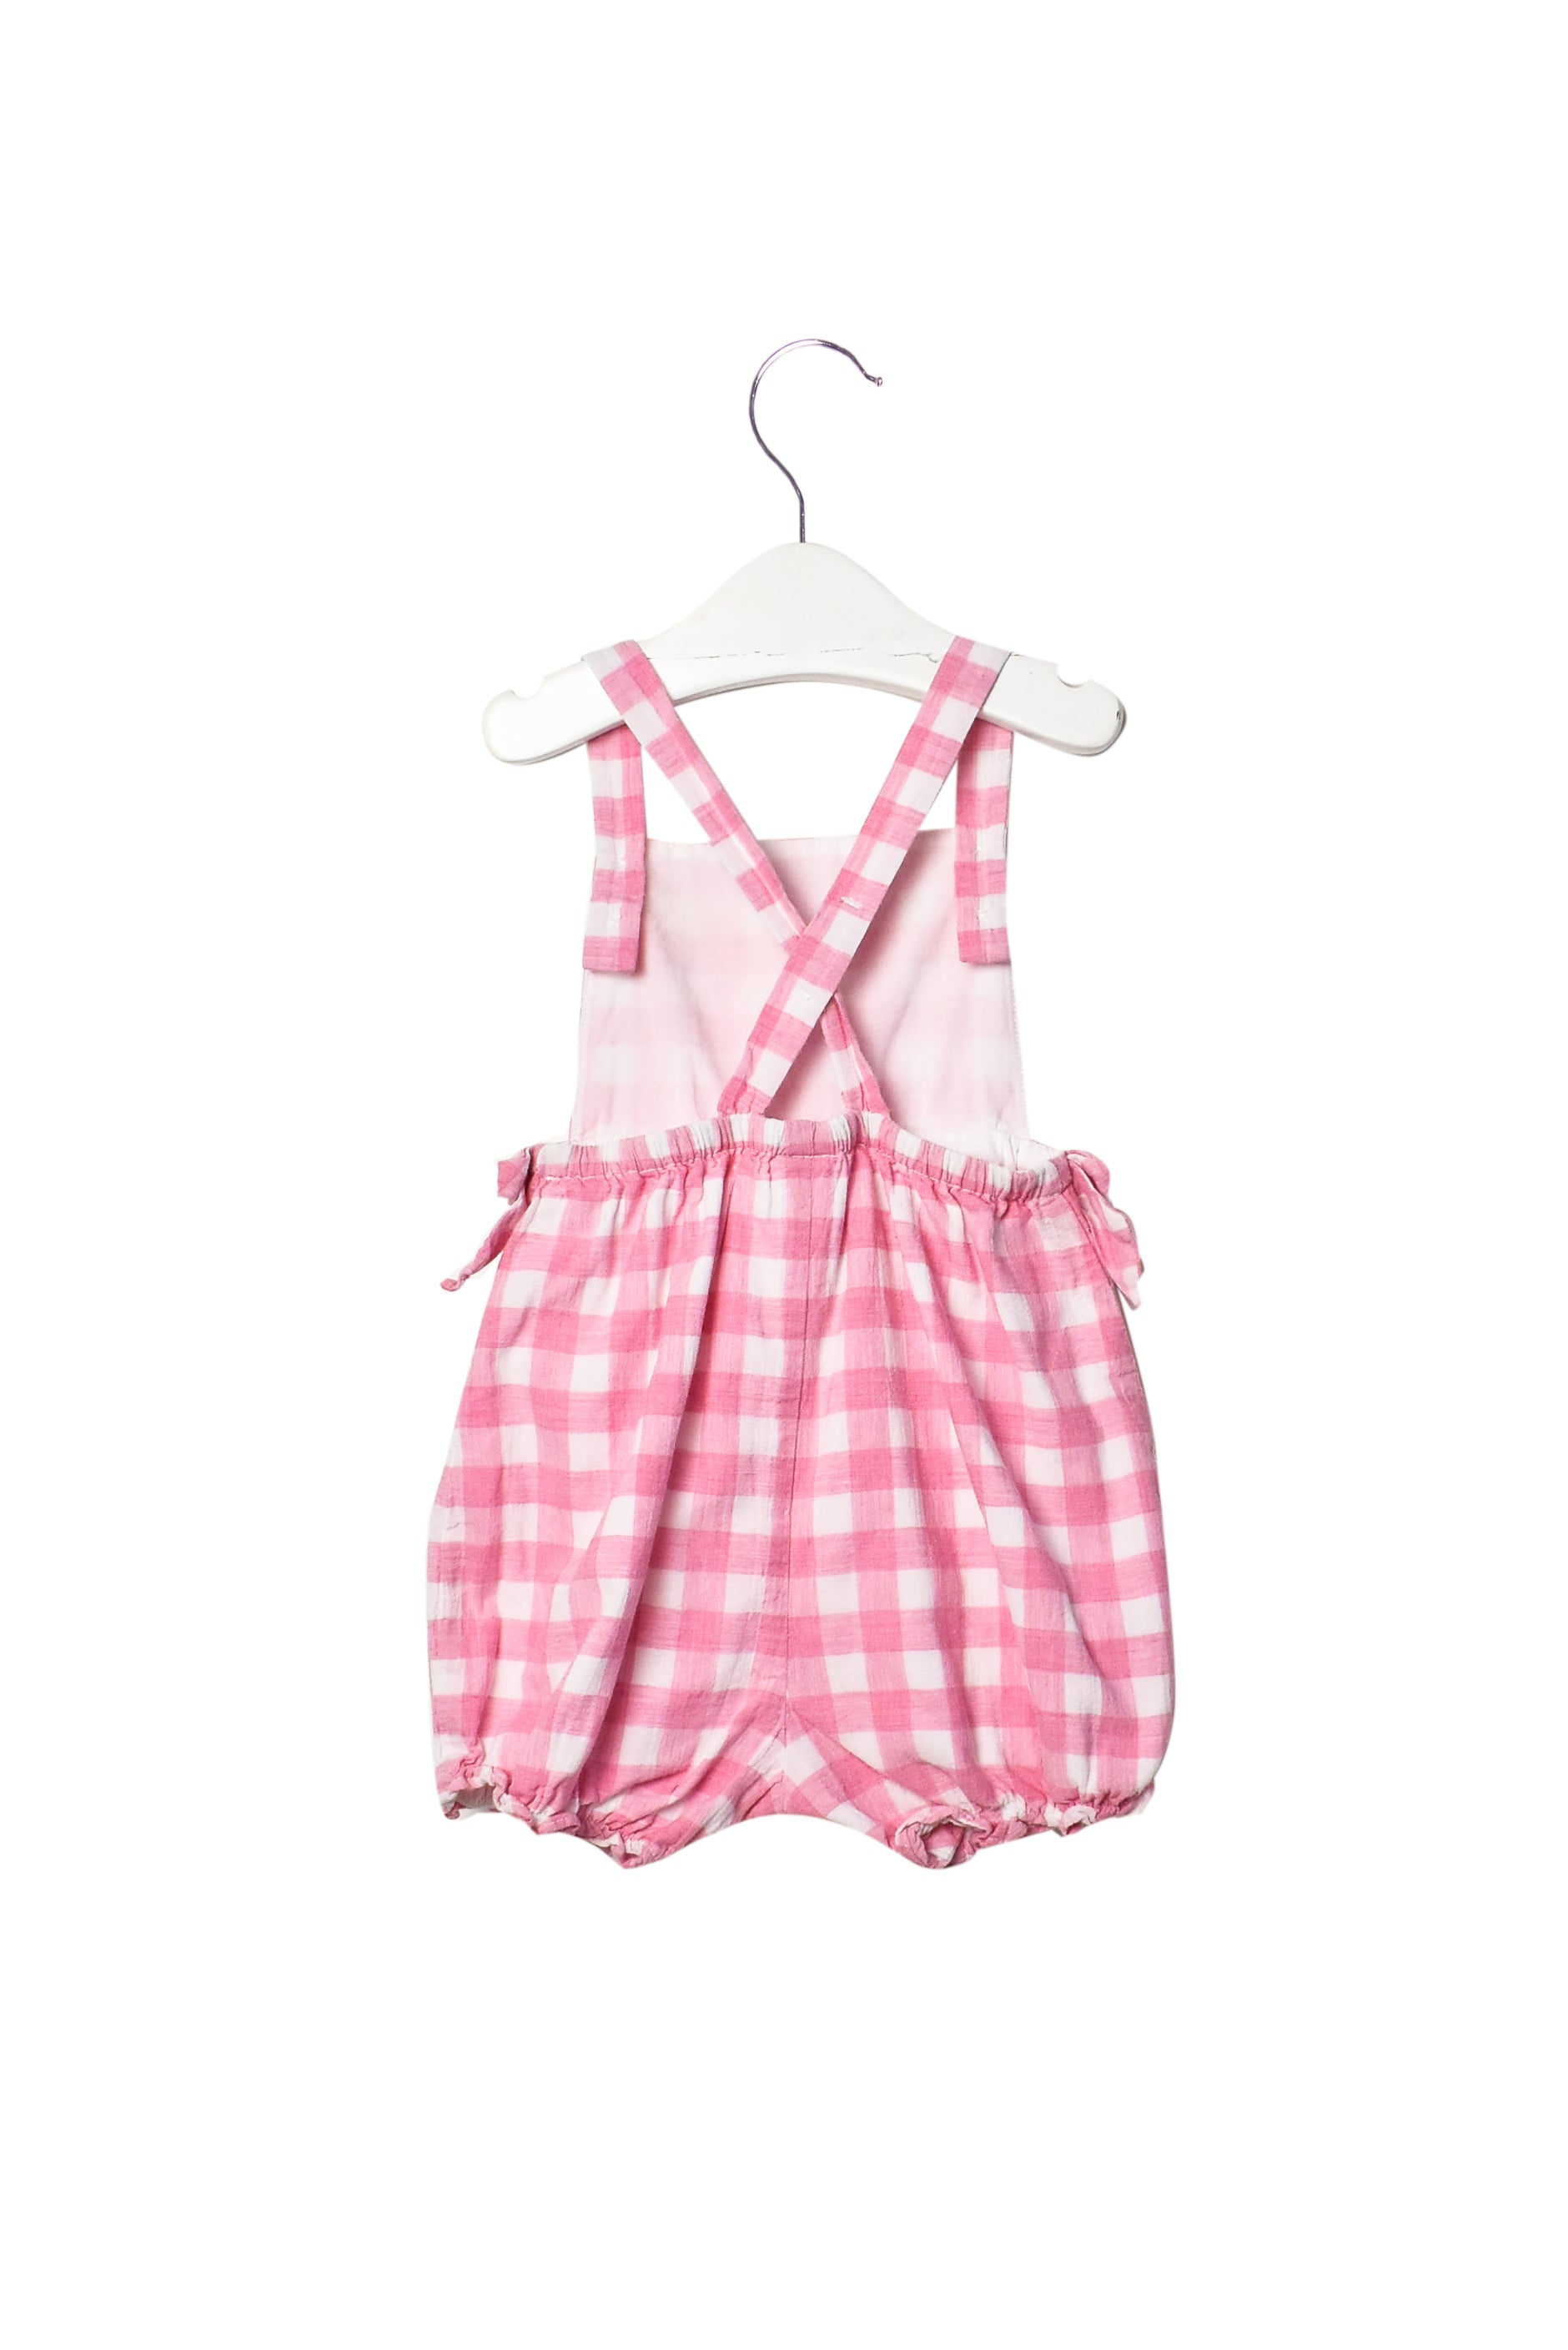 10008150 Janie & Jack Baby ~ Romper 6-12M at Retykle